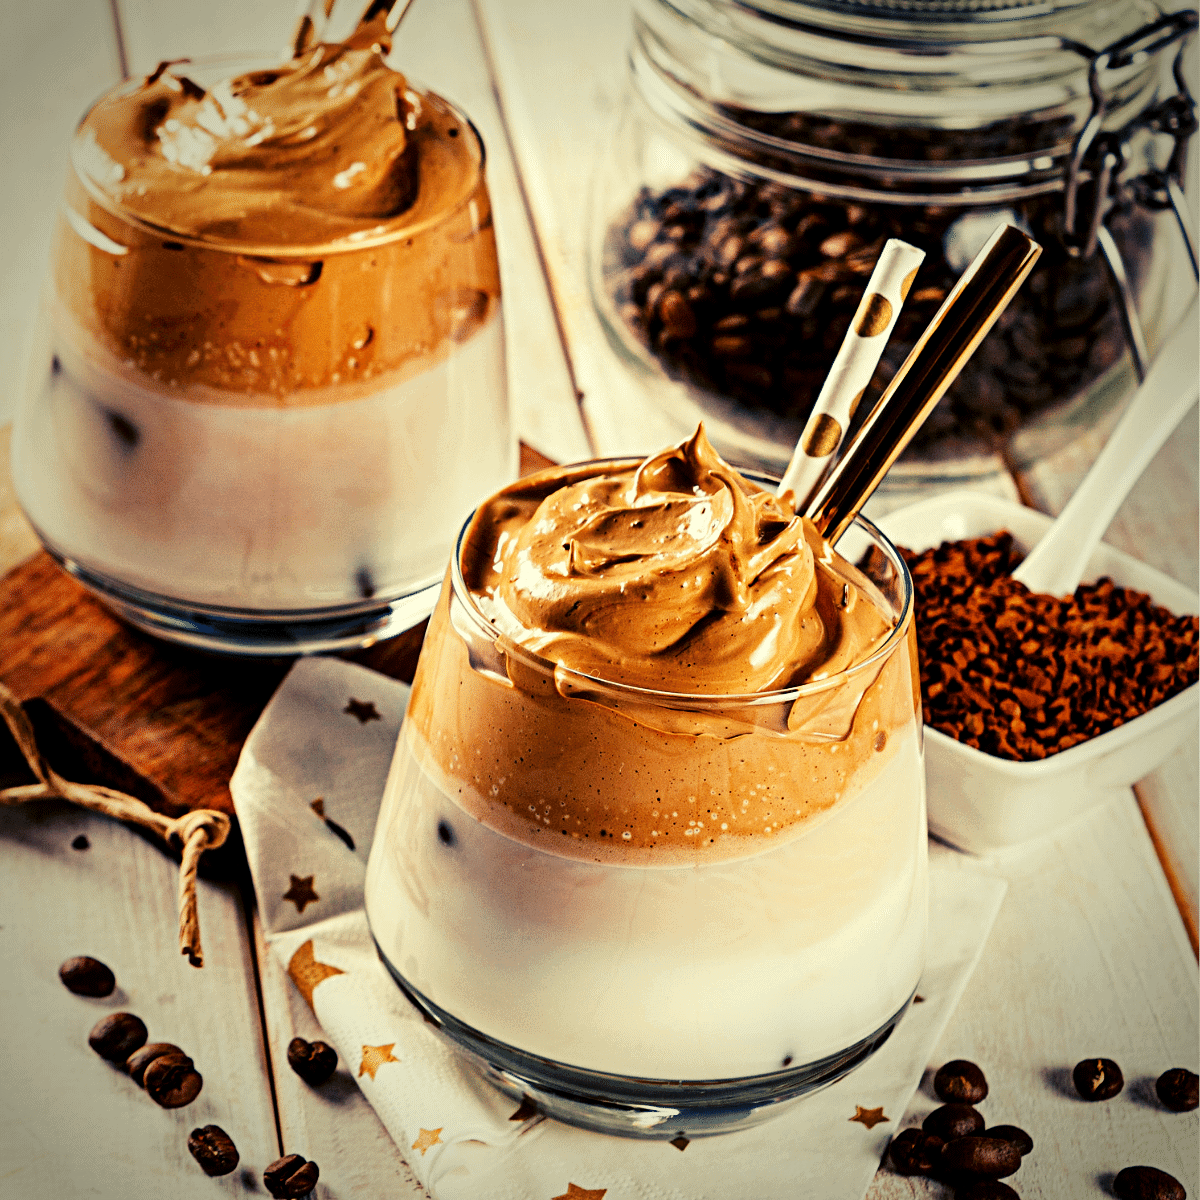 Keto Whipped Coffee Recipe low carb gluten free treat